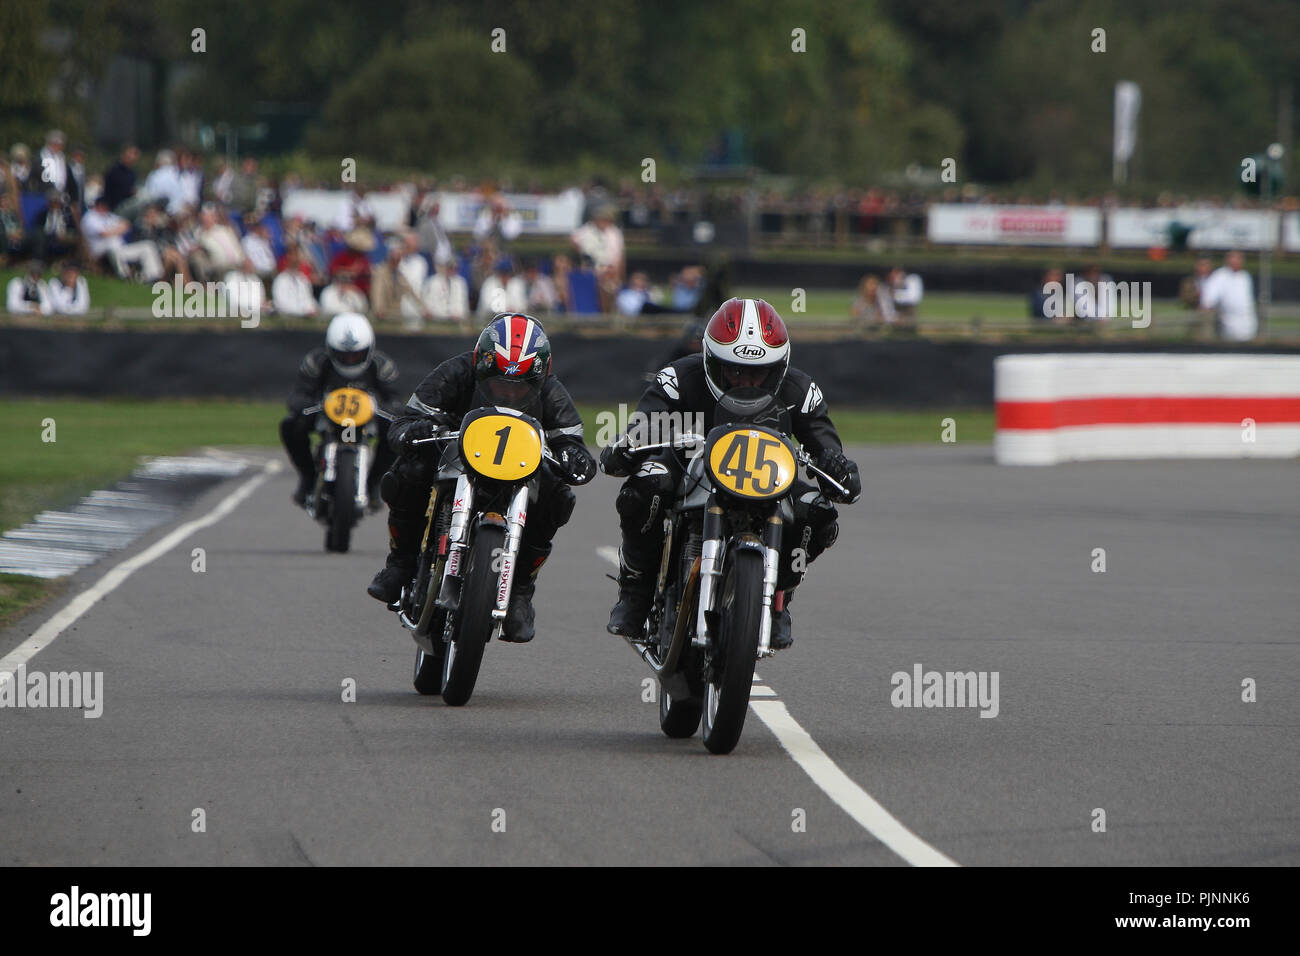 Goodwood, West Sussex, UK. 8th September 2018. Barry Sheene memorial trophy part 1 at the 20th Goodwood Revival in Goodwood, West Sussex, UK. © Malcolm Greig/Alamy Live News Stock Photo